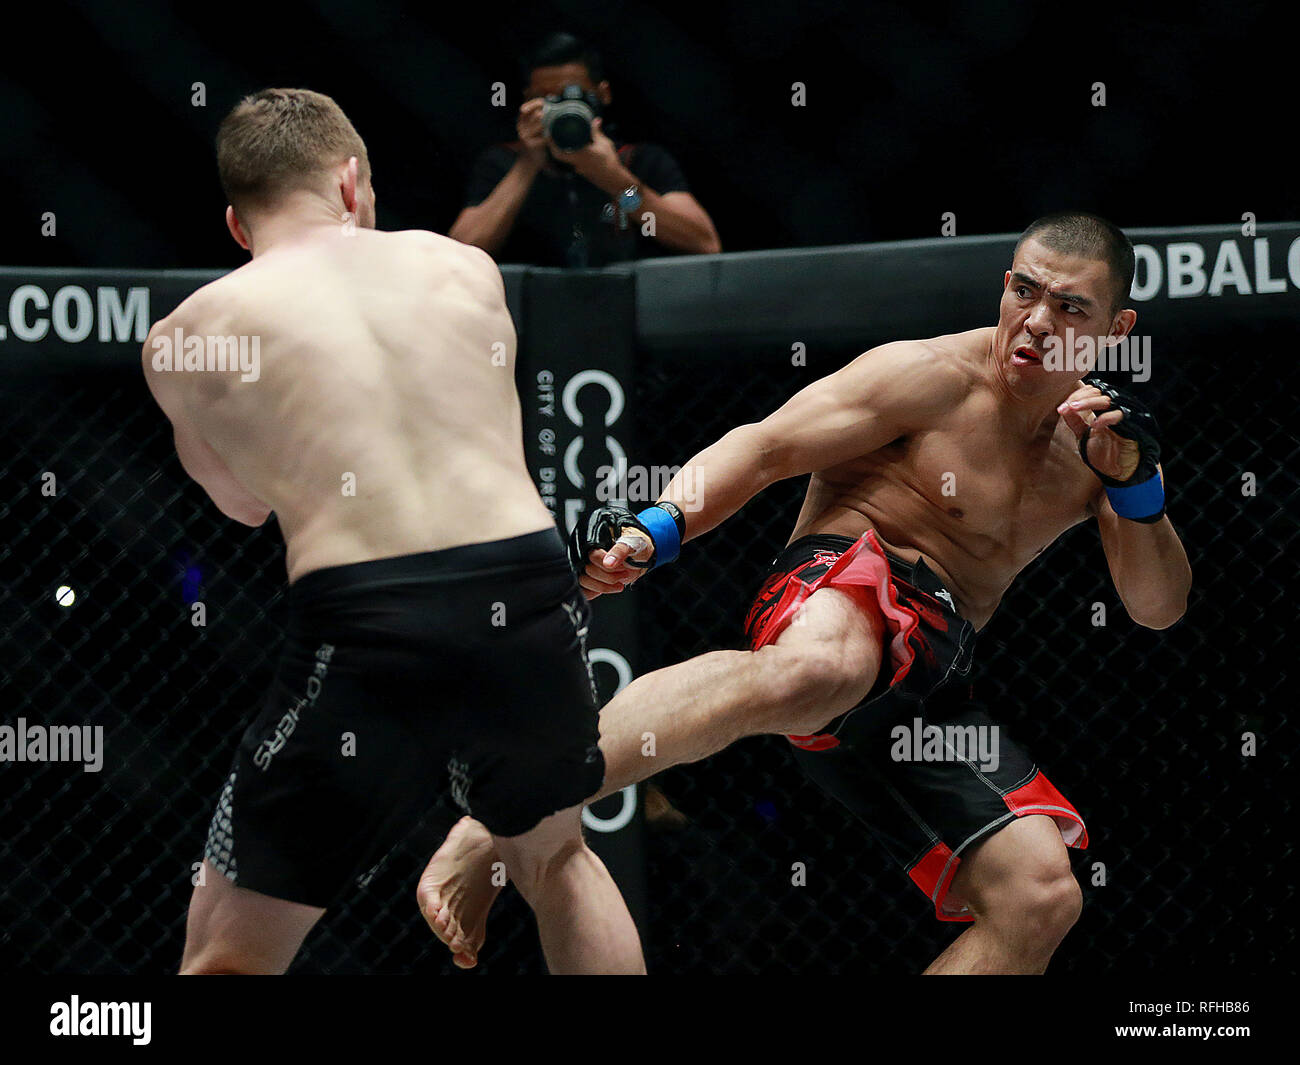 Pasay City, Philippines. 25th Jan, 2019. Reinier de Ridder of the Netherlands (L) competes against Fan Rong of China during their middleweight match in the One Championship in Pasay City, the Philippines, Jan. 25, 2019. De Ridder won via submission in round 1. Credit: Rouelle Umali/Xinhua/Alamy Live News - Stock Image